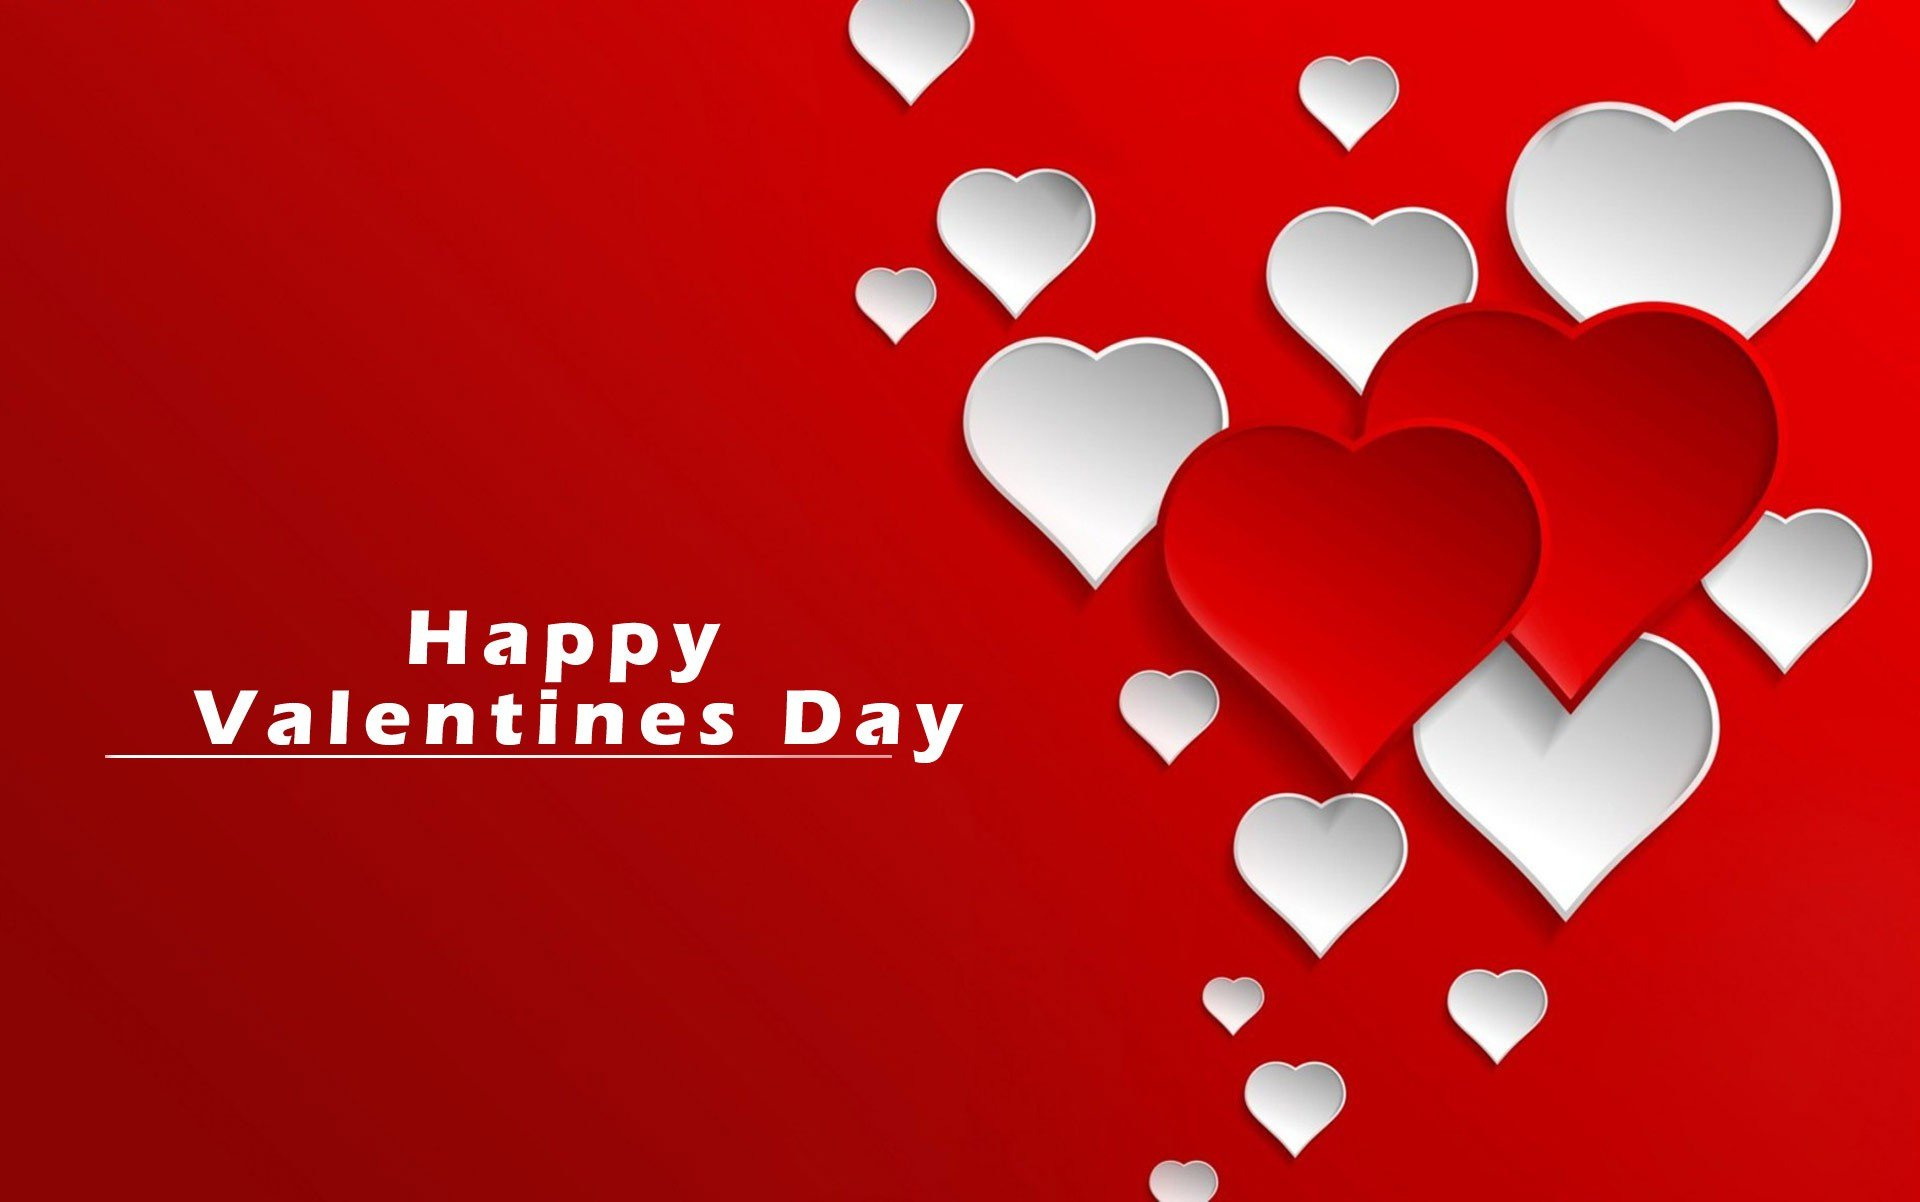 Valentines Day Wallpapers   Top Valentines Day Backgrounds 1920x1202